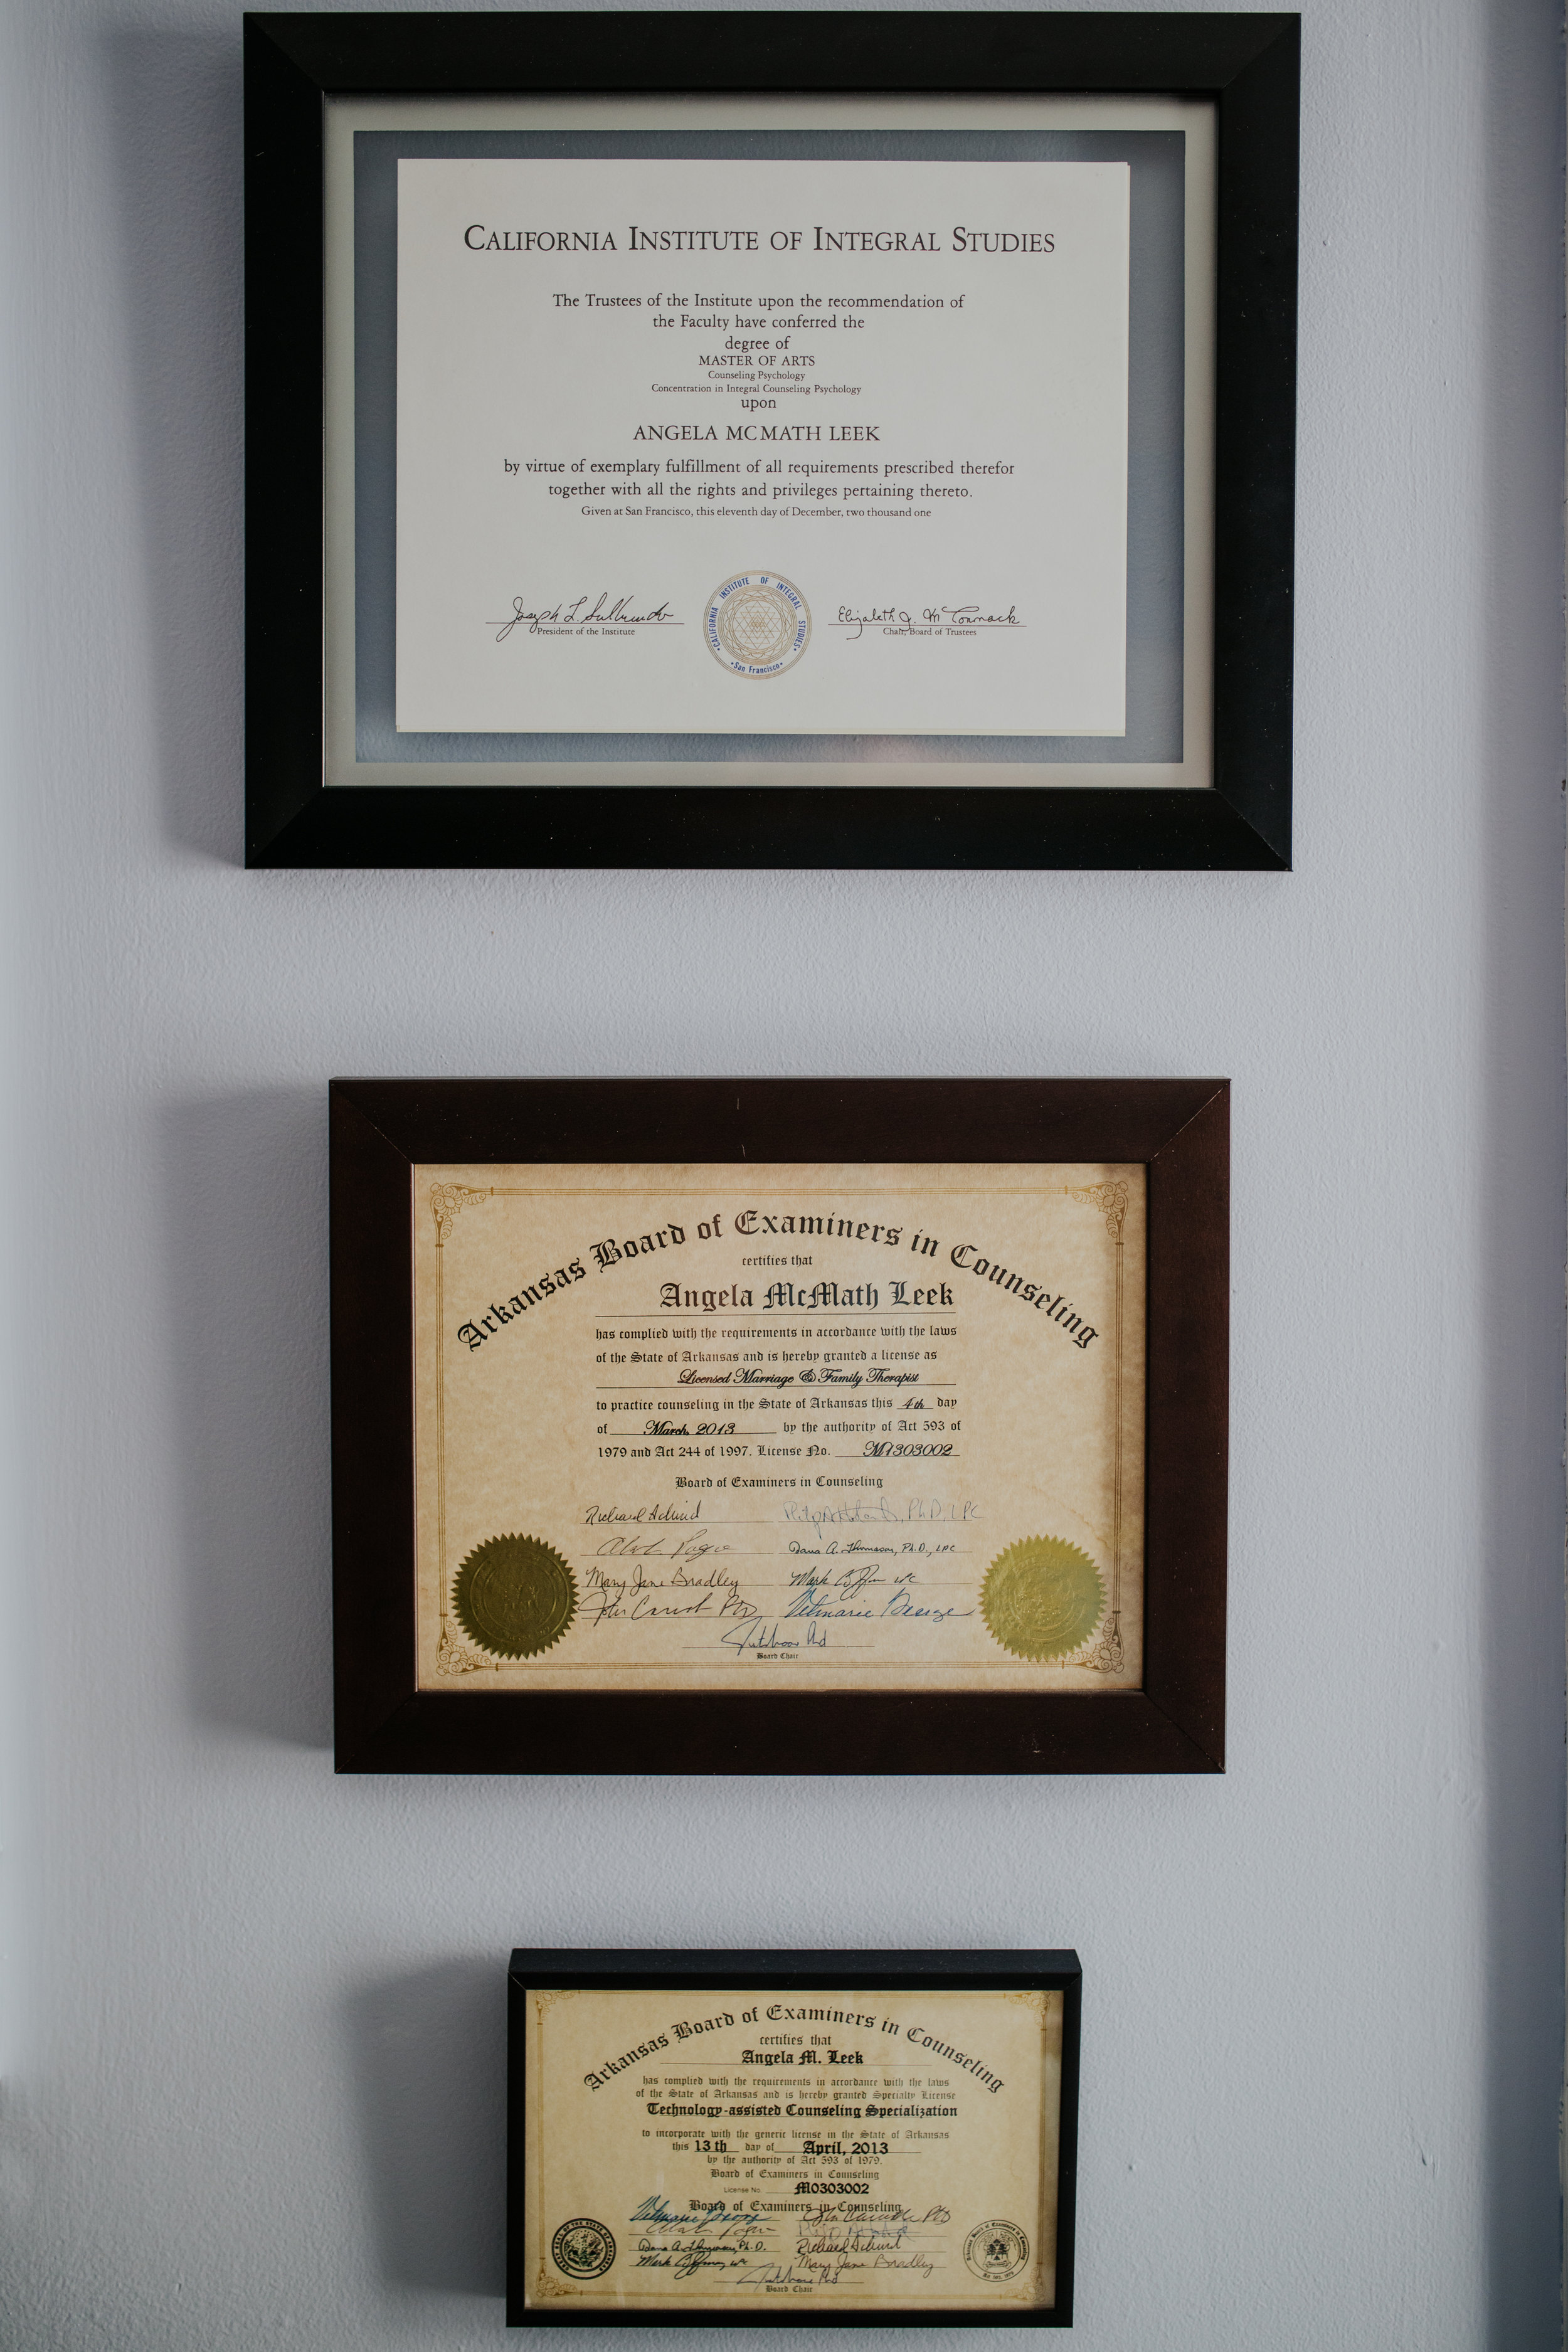 Degrees and Credentials - BA, Human Studies, Warren Wilson College. Asheville, NC 1996MA, Integral Counseling Psychology, California Institute of Integral Studies. San Francisco, CA 2001Marriage and Family Therapist (CA) MFC 41455Marriage and Family Therapist (AR) m1303002Licensed Professional Counselor (AR) #P1710368Technology Assisted Specialization (AR)Marriage and Family Therapist (GA) MFT001613Marriage and Family Therapist (NY) 001470RYT 200 (Registered Yoga Teacher) Yoga GypsyPost graduate coursework at University of Arkansas towards LPC licensure 2016-2017EMDR 2Supervision Specialization (AR)